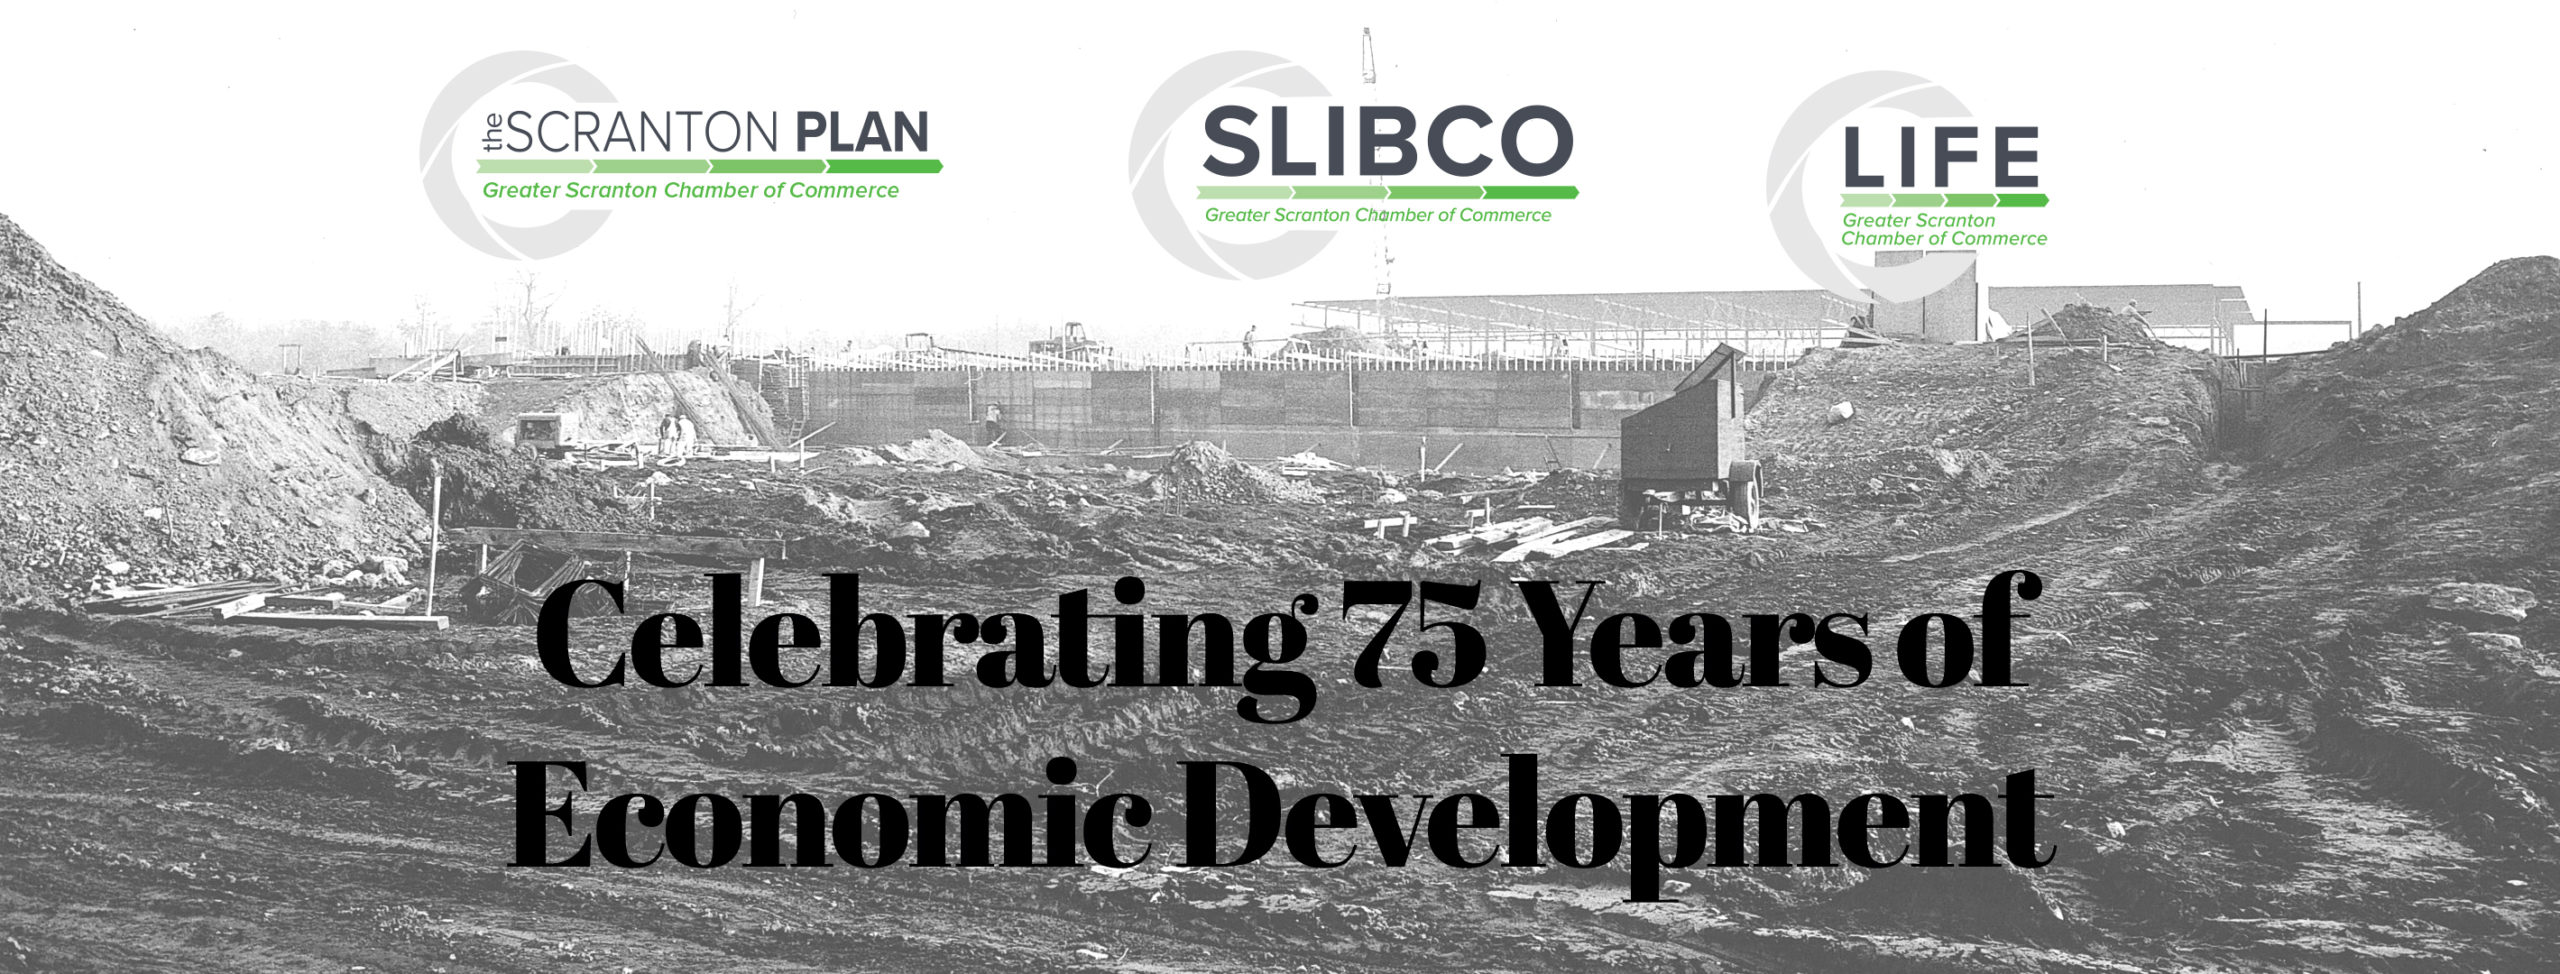 75 Years of Building a Community